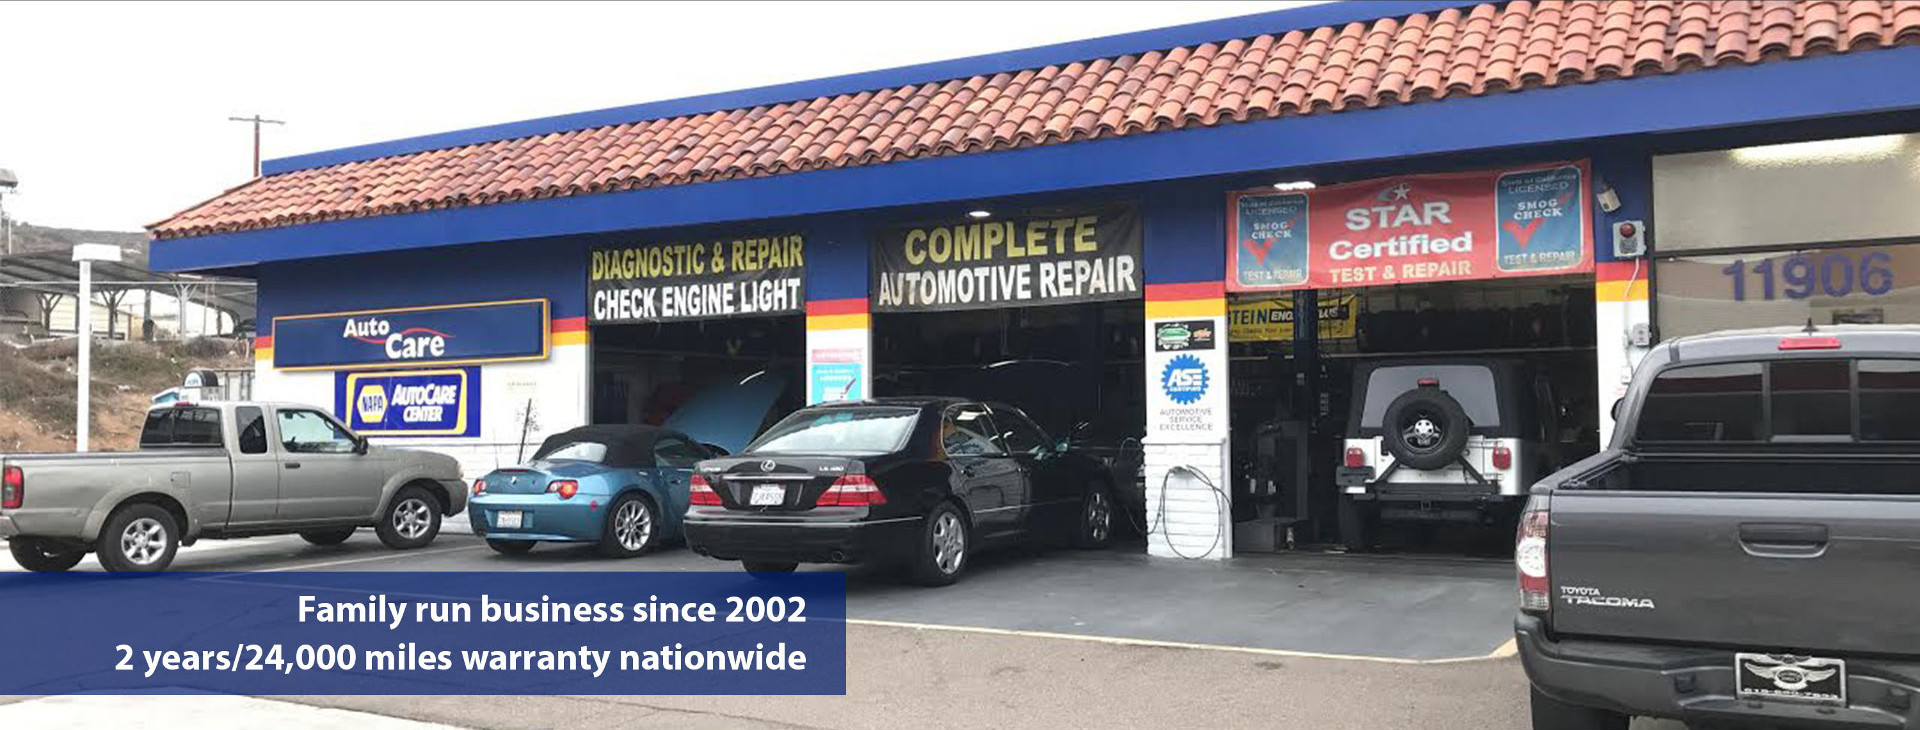 Diagnostic & Repair Center, Check Engine Light - Smog check San Diego